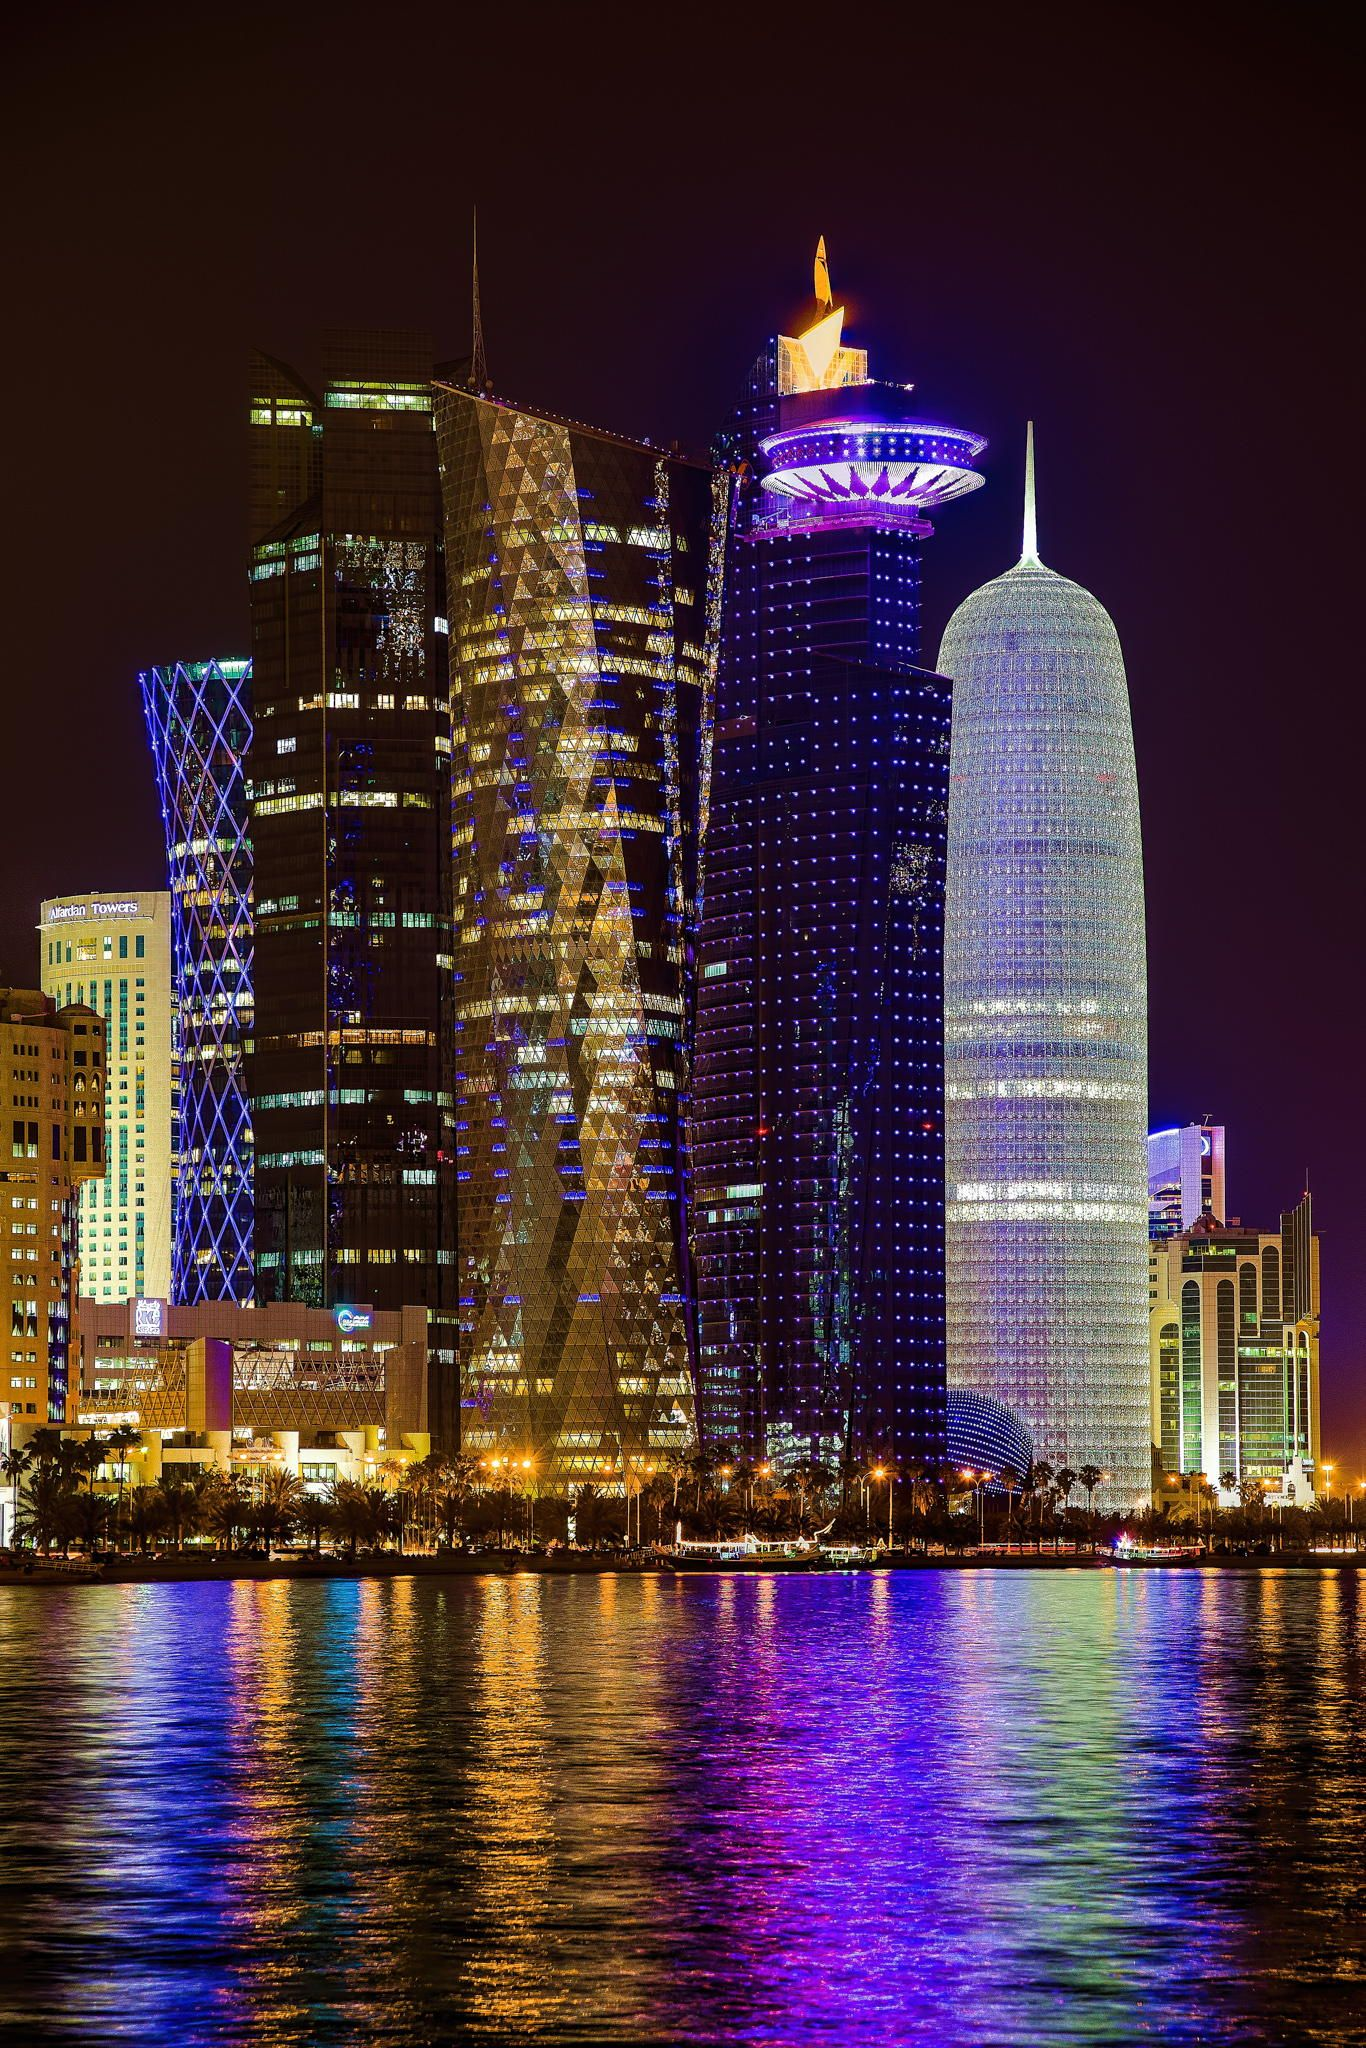 And 6 lusail katara hotel doha qatar pictures to pin on pinterest - Doha At Night Qatar Marynistyka Org Marynistyka Pl